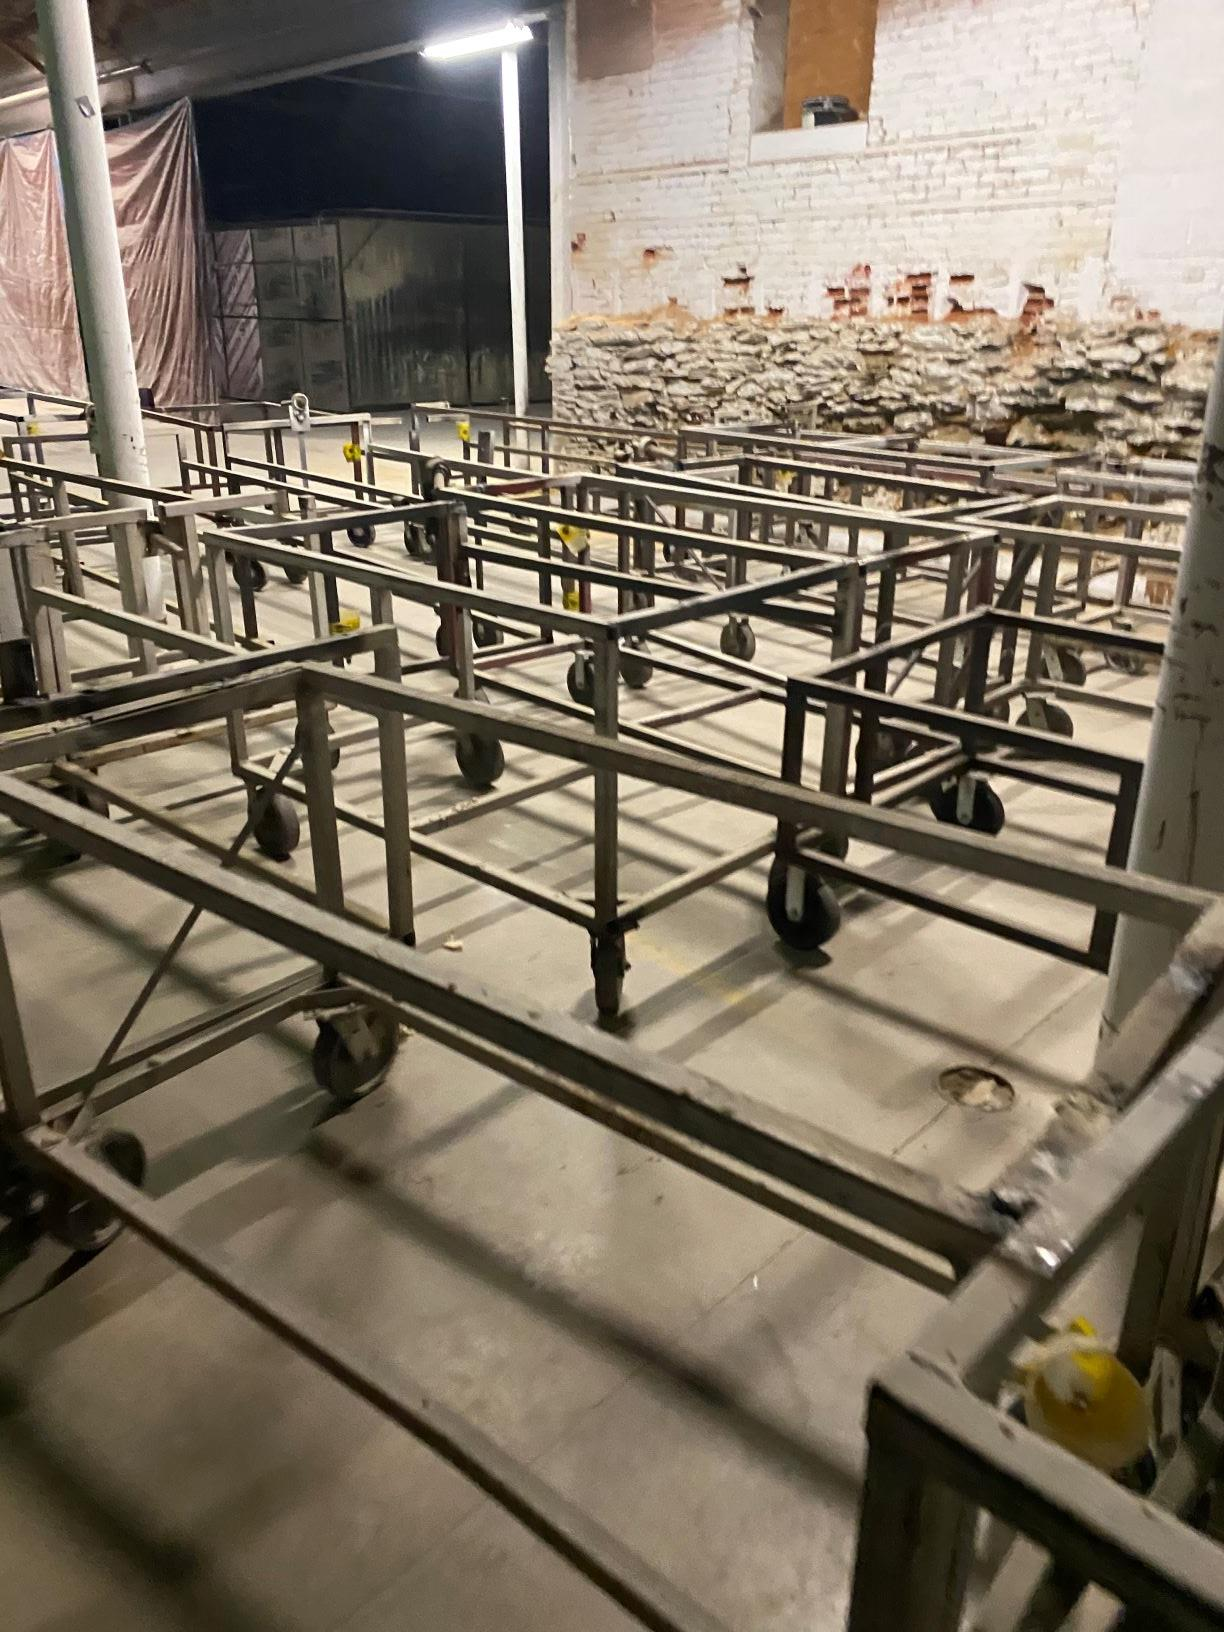 Heavy Duty Rolling Carts Various sizes Lot of approx. 25 - Image 3 of 6